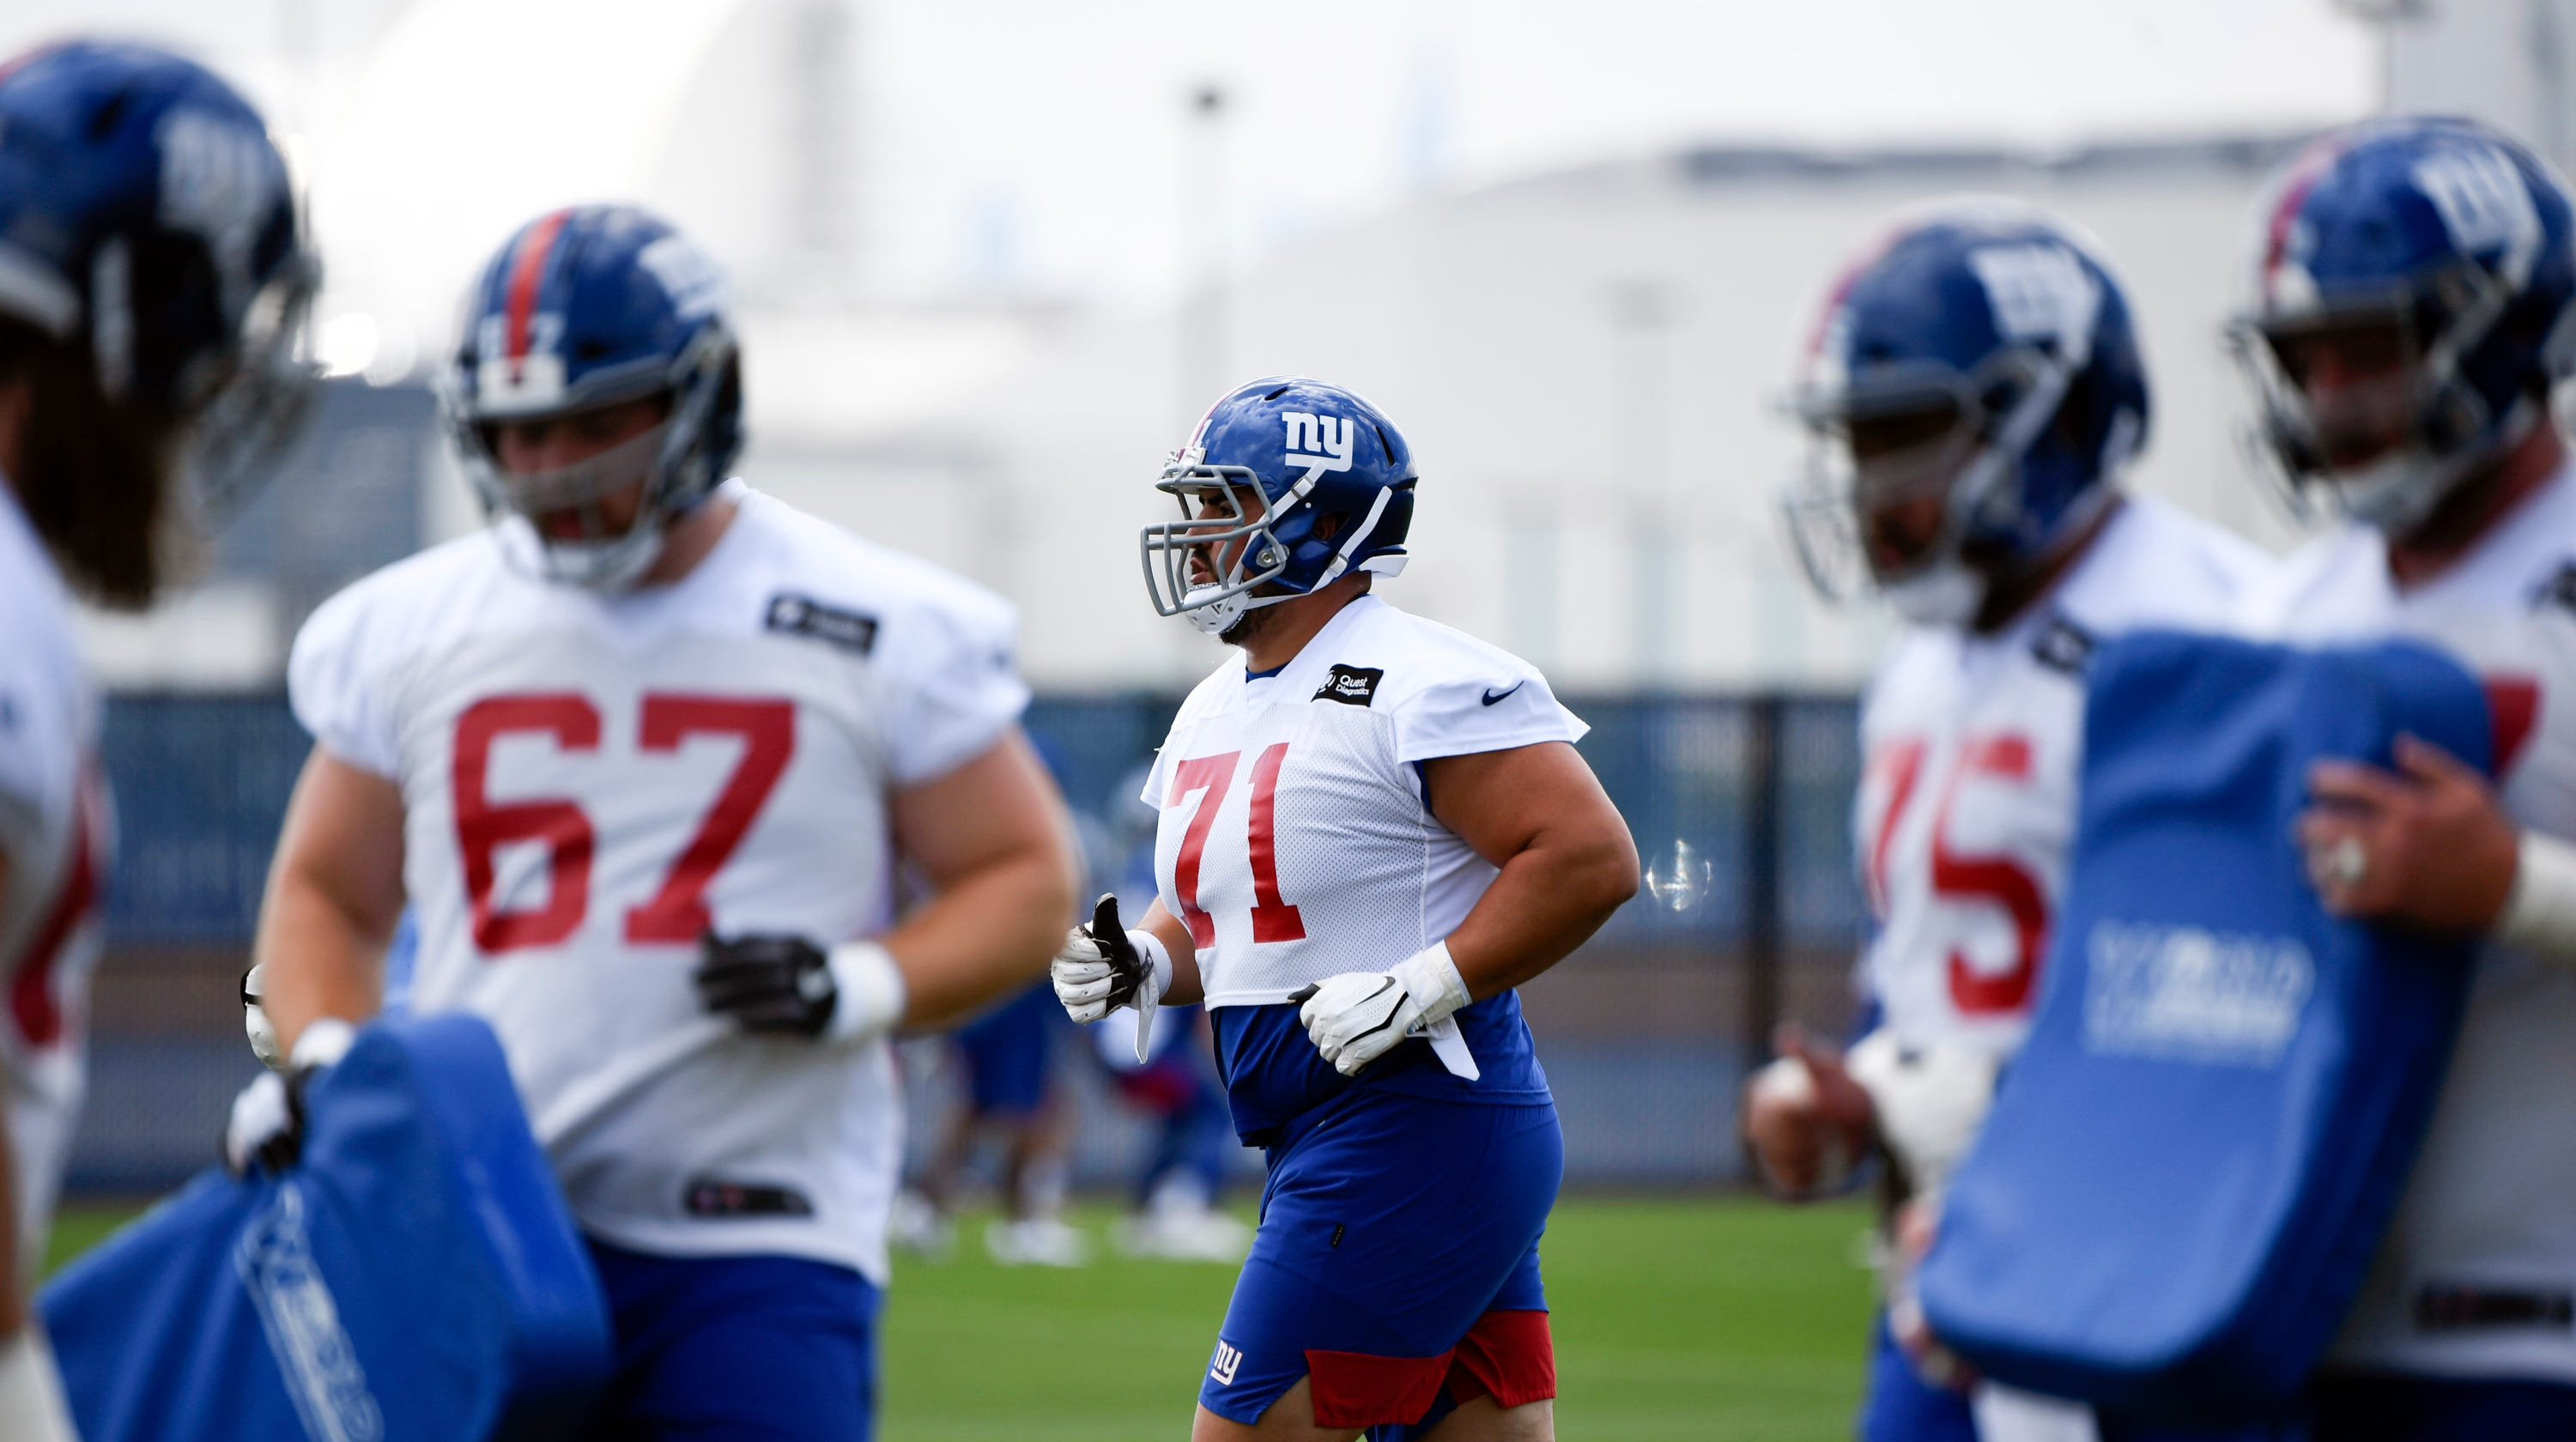 timeless design 48f1d 4011a NY Giants training camp preview: Complete offensive line ...